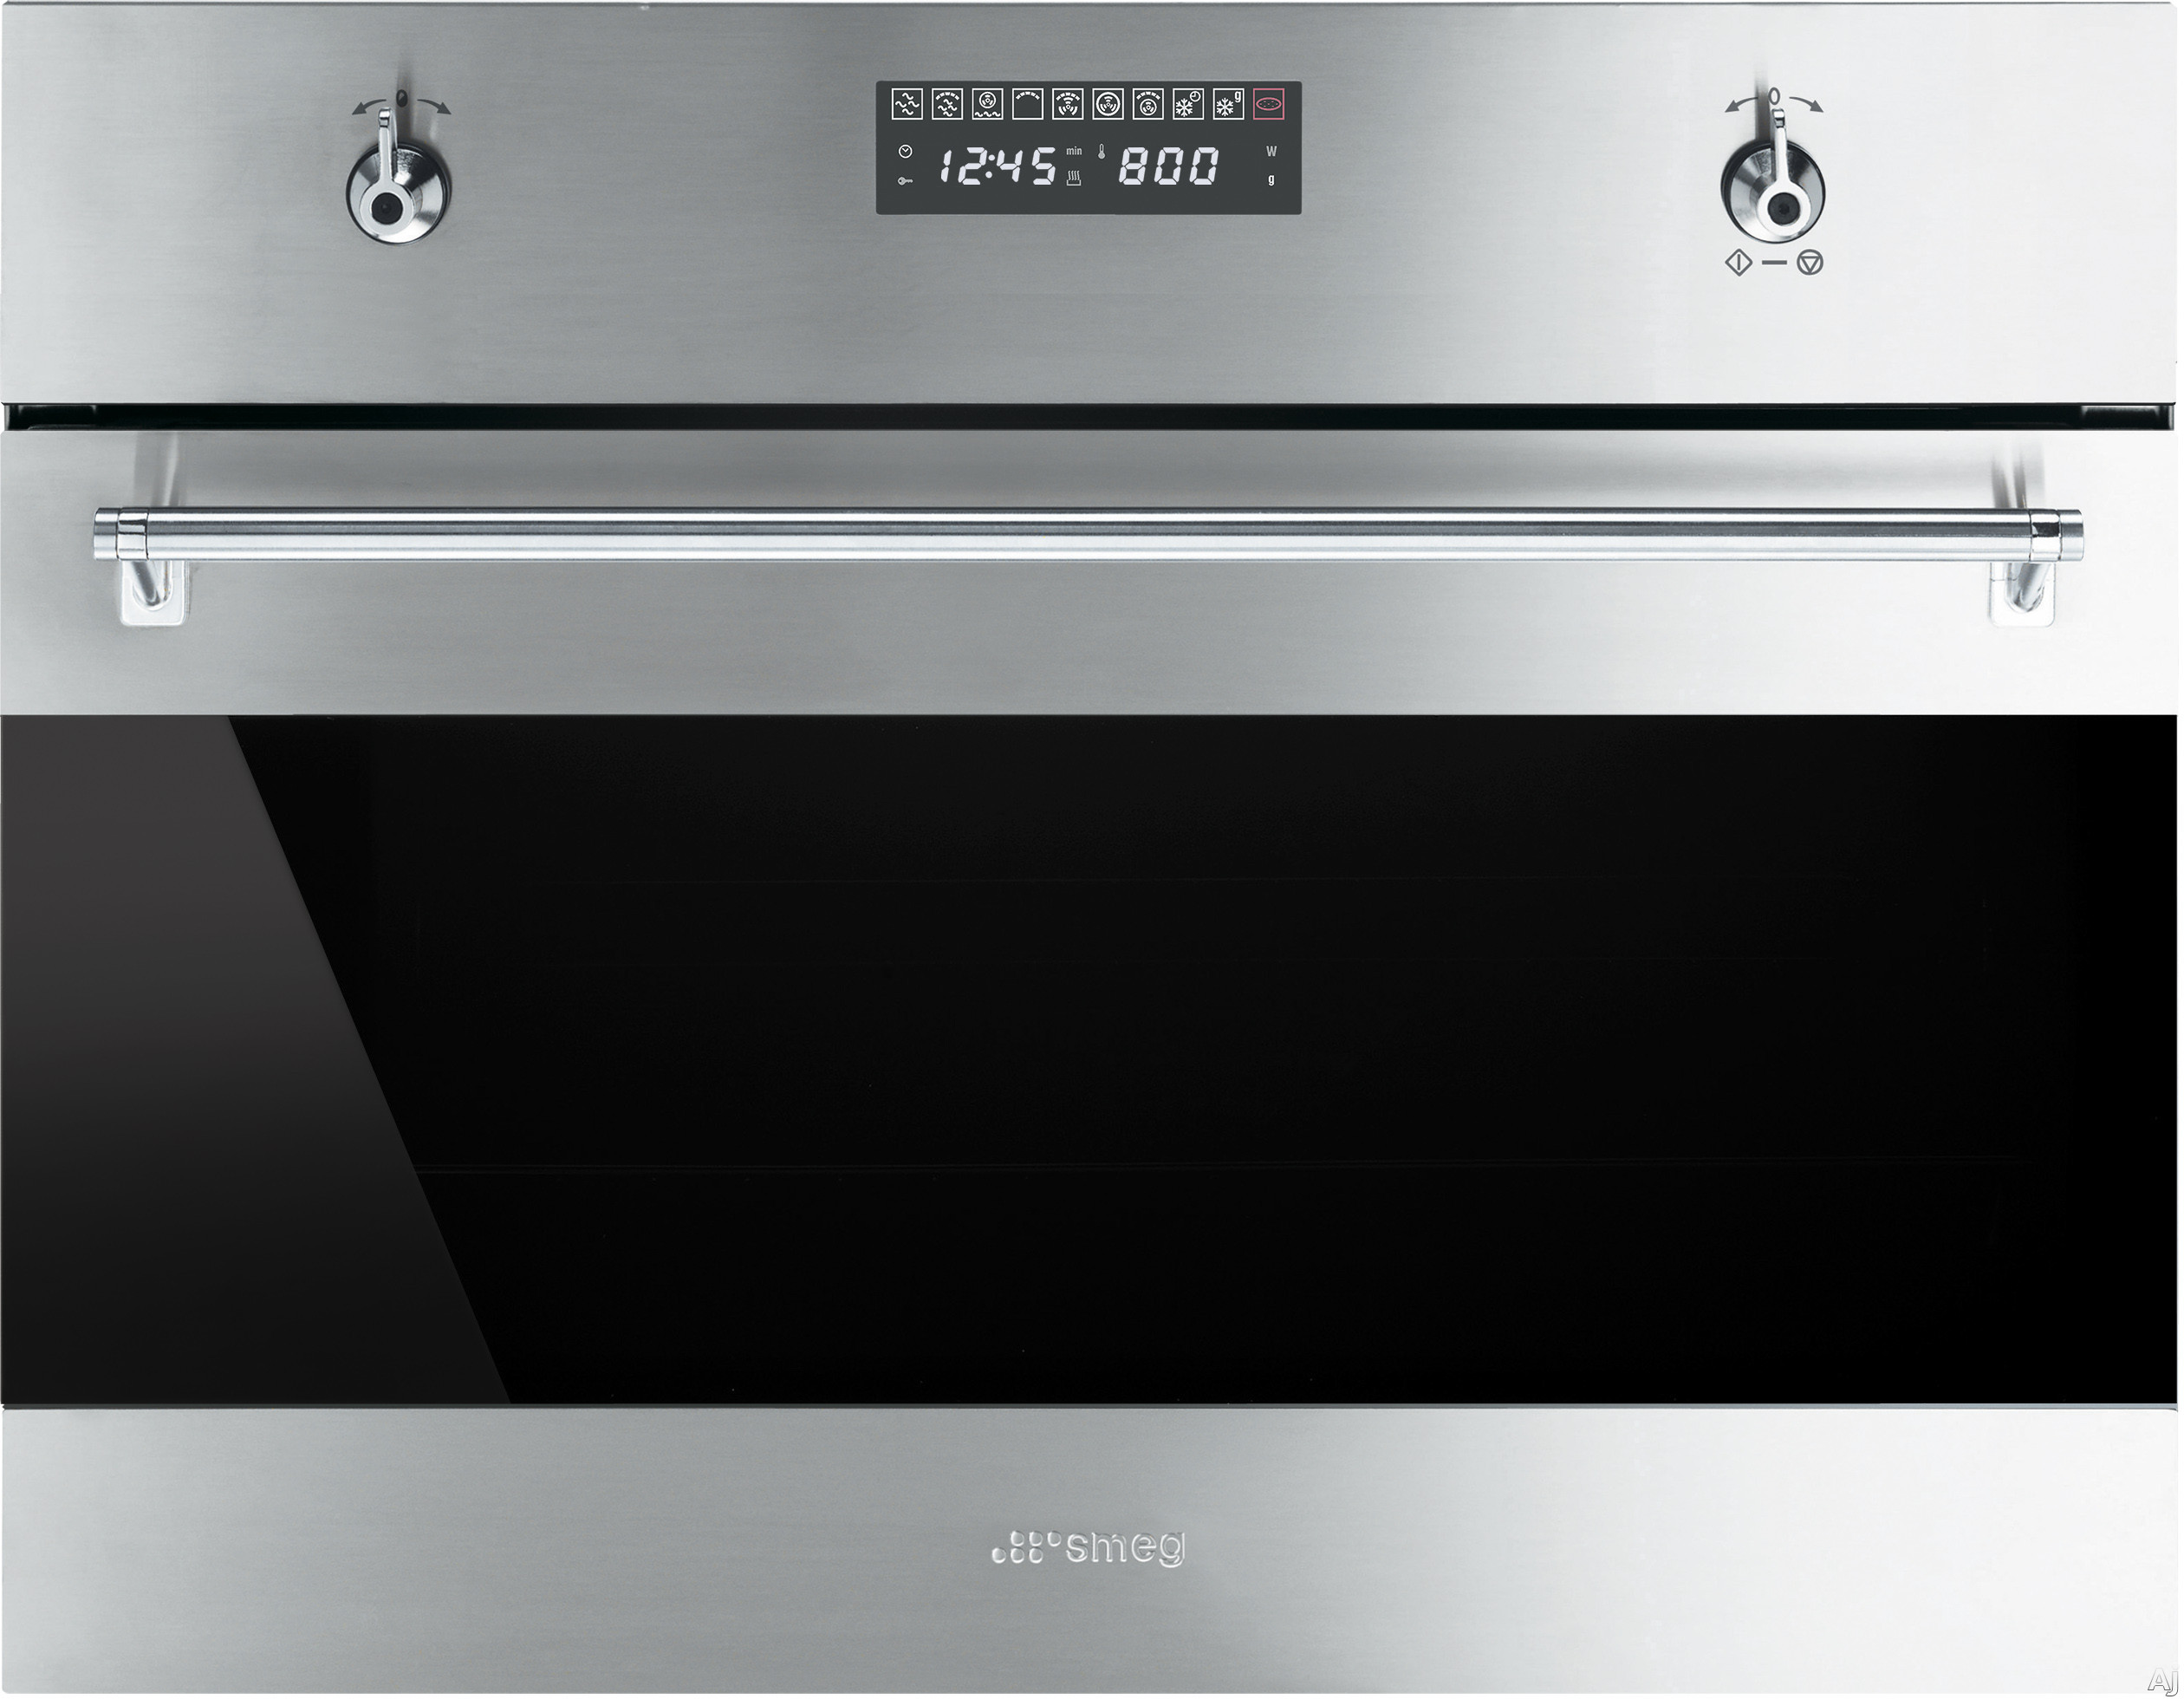 Smeg Classic Design SU45MCX1 24 Inch Built-in Speed Oven with 1000W Microwave, 1.2 cu. ft. Capacity, 10 Cooking Modes, 5 Power Levels, True Convection, Self-Clean and Safety Lock